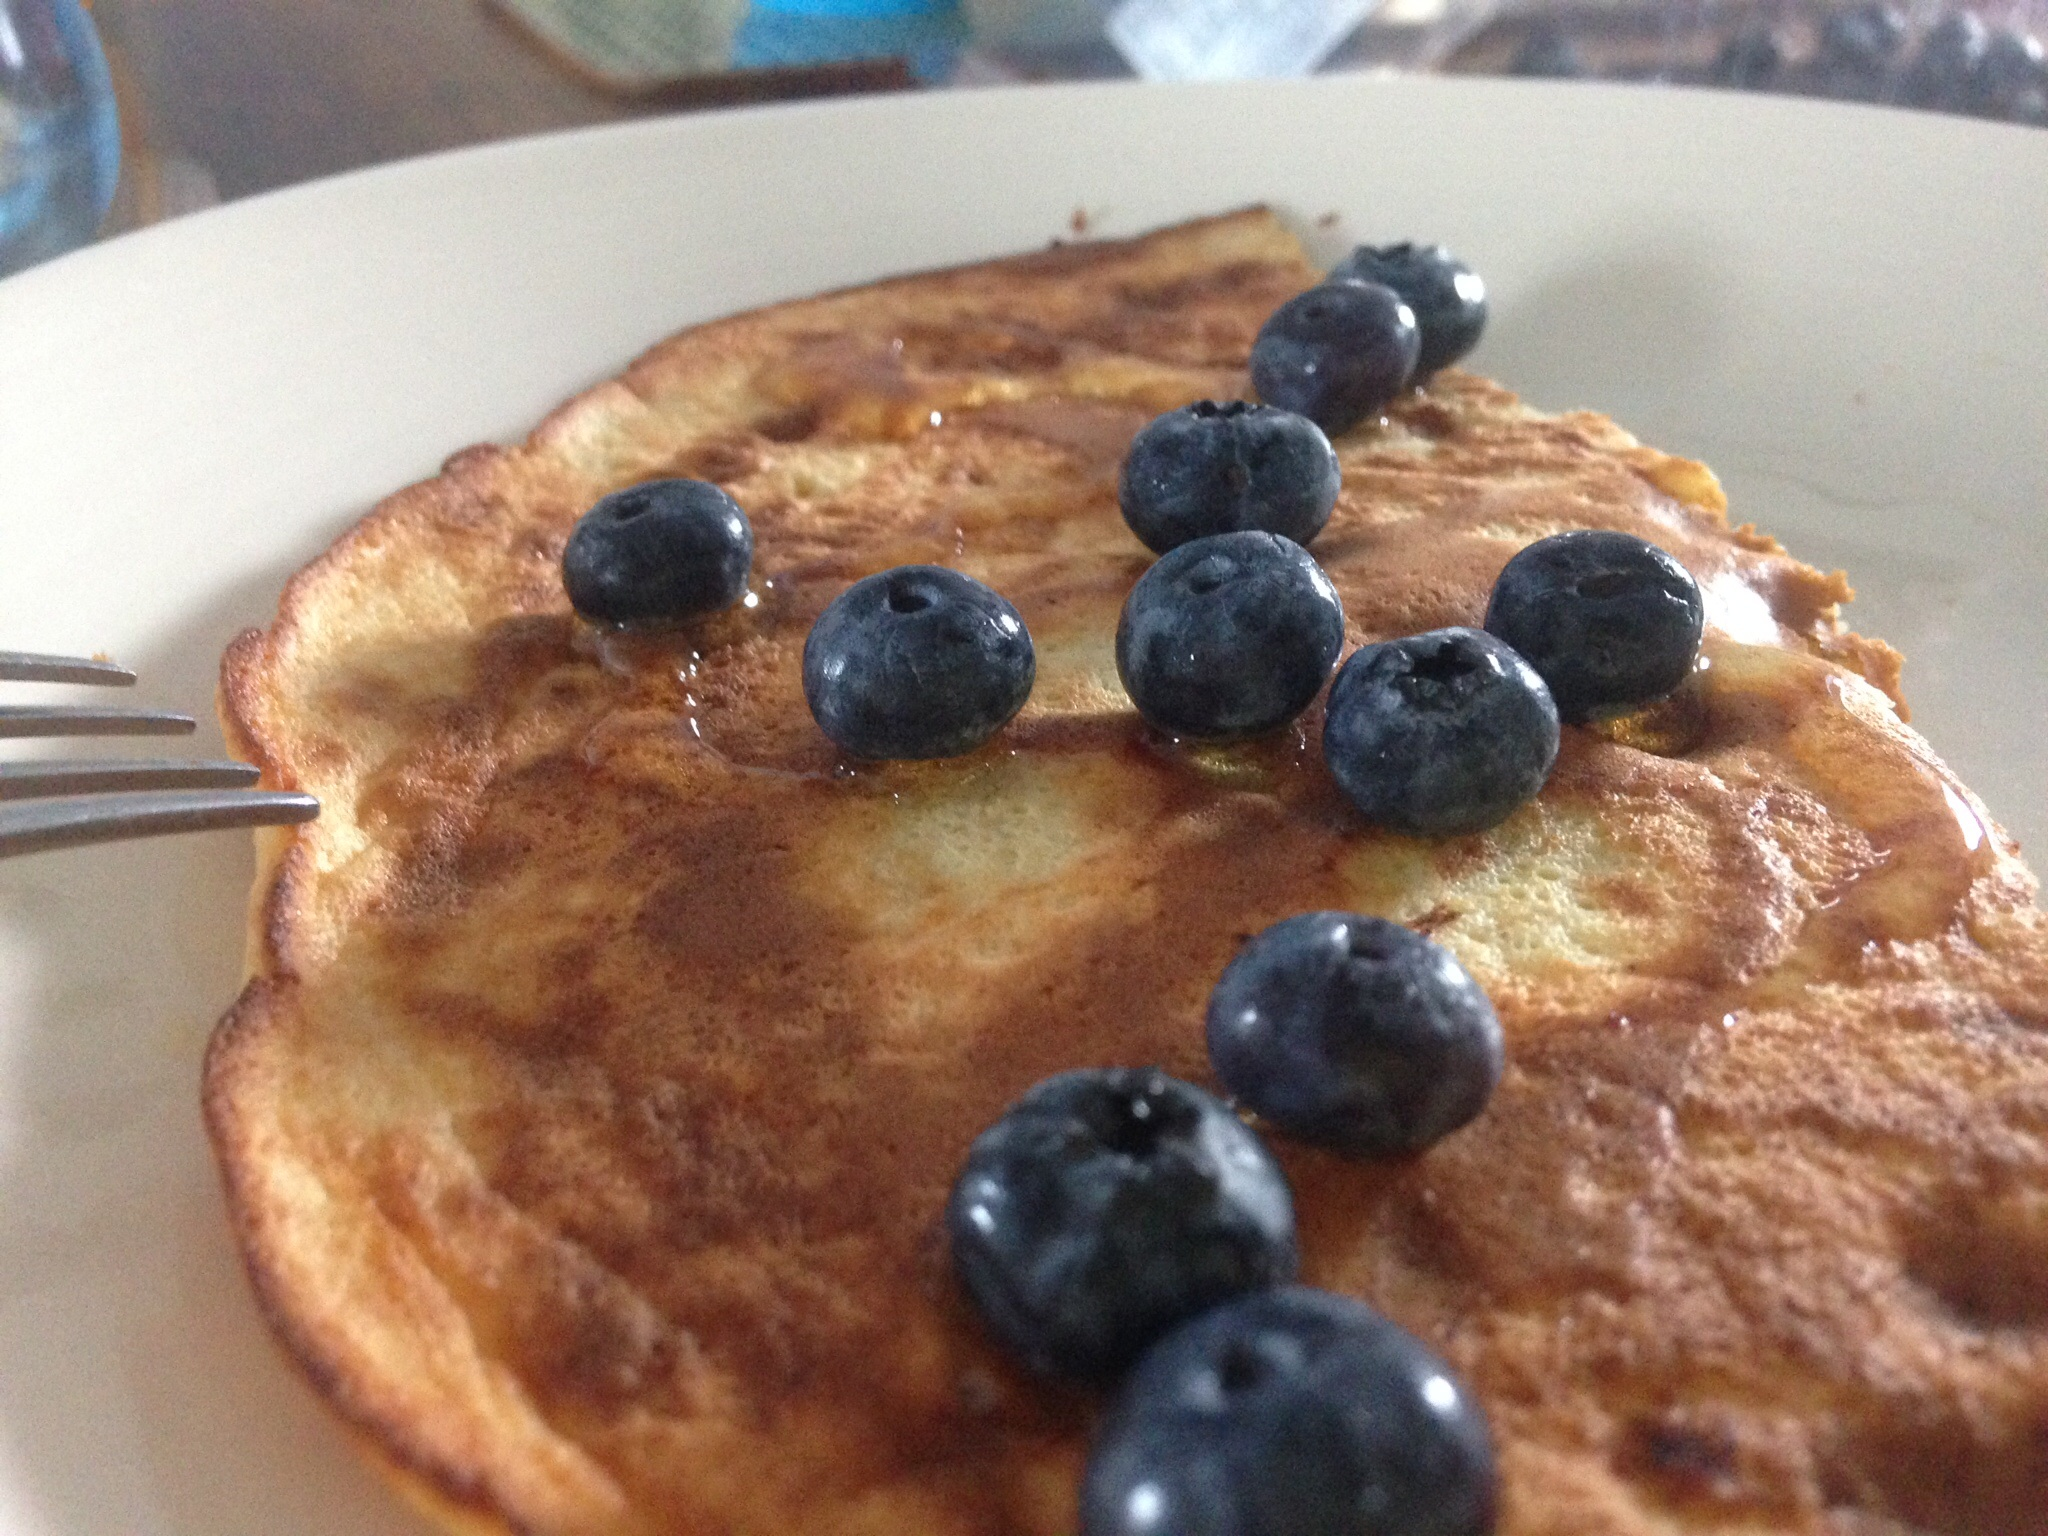 Pancakes served with honey and blueberries.